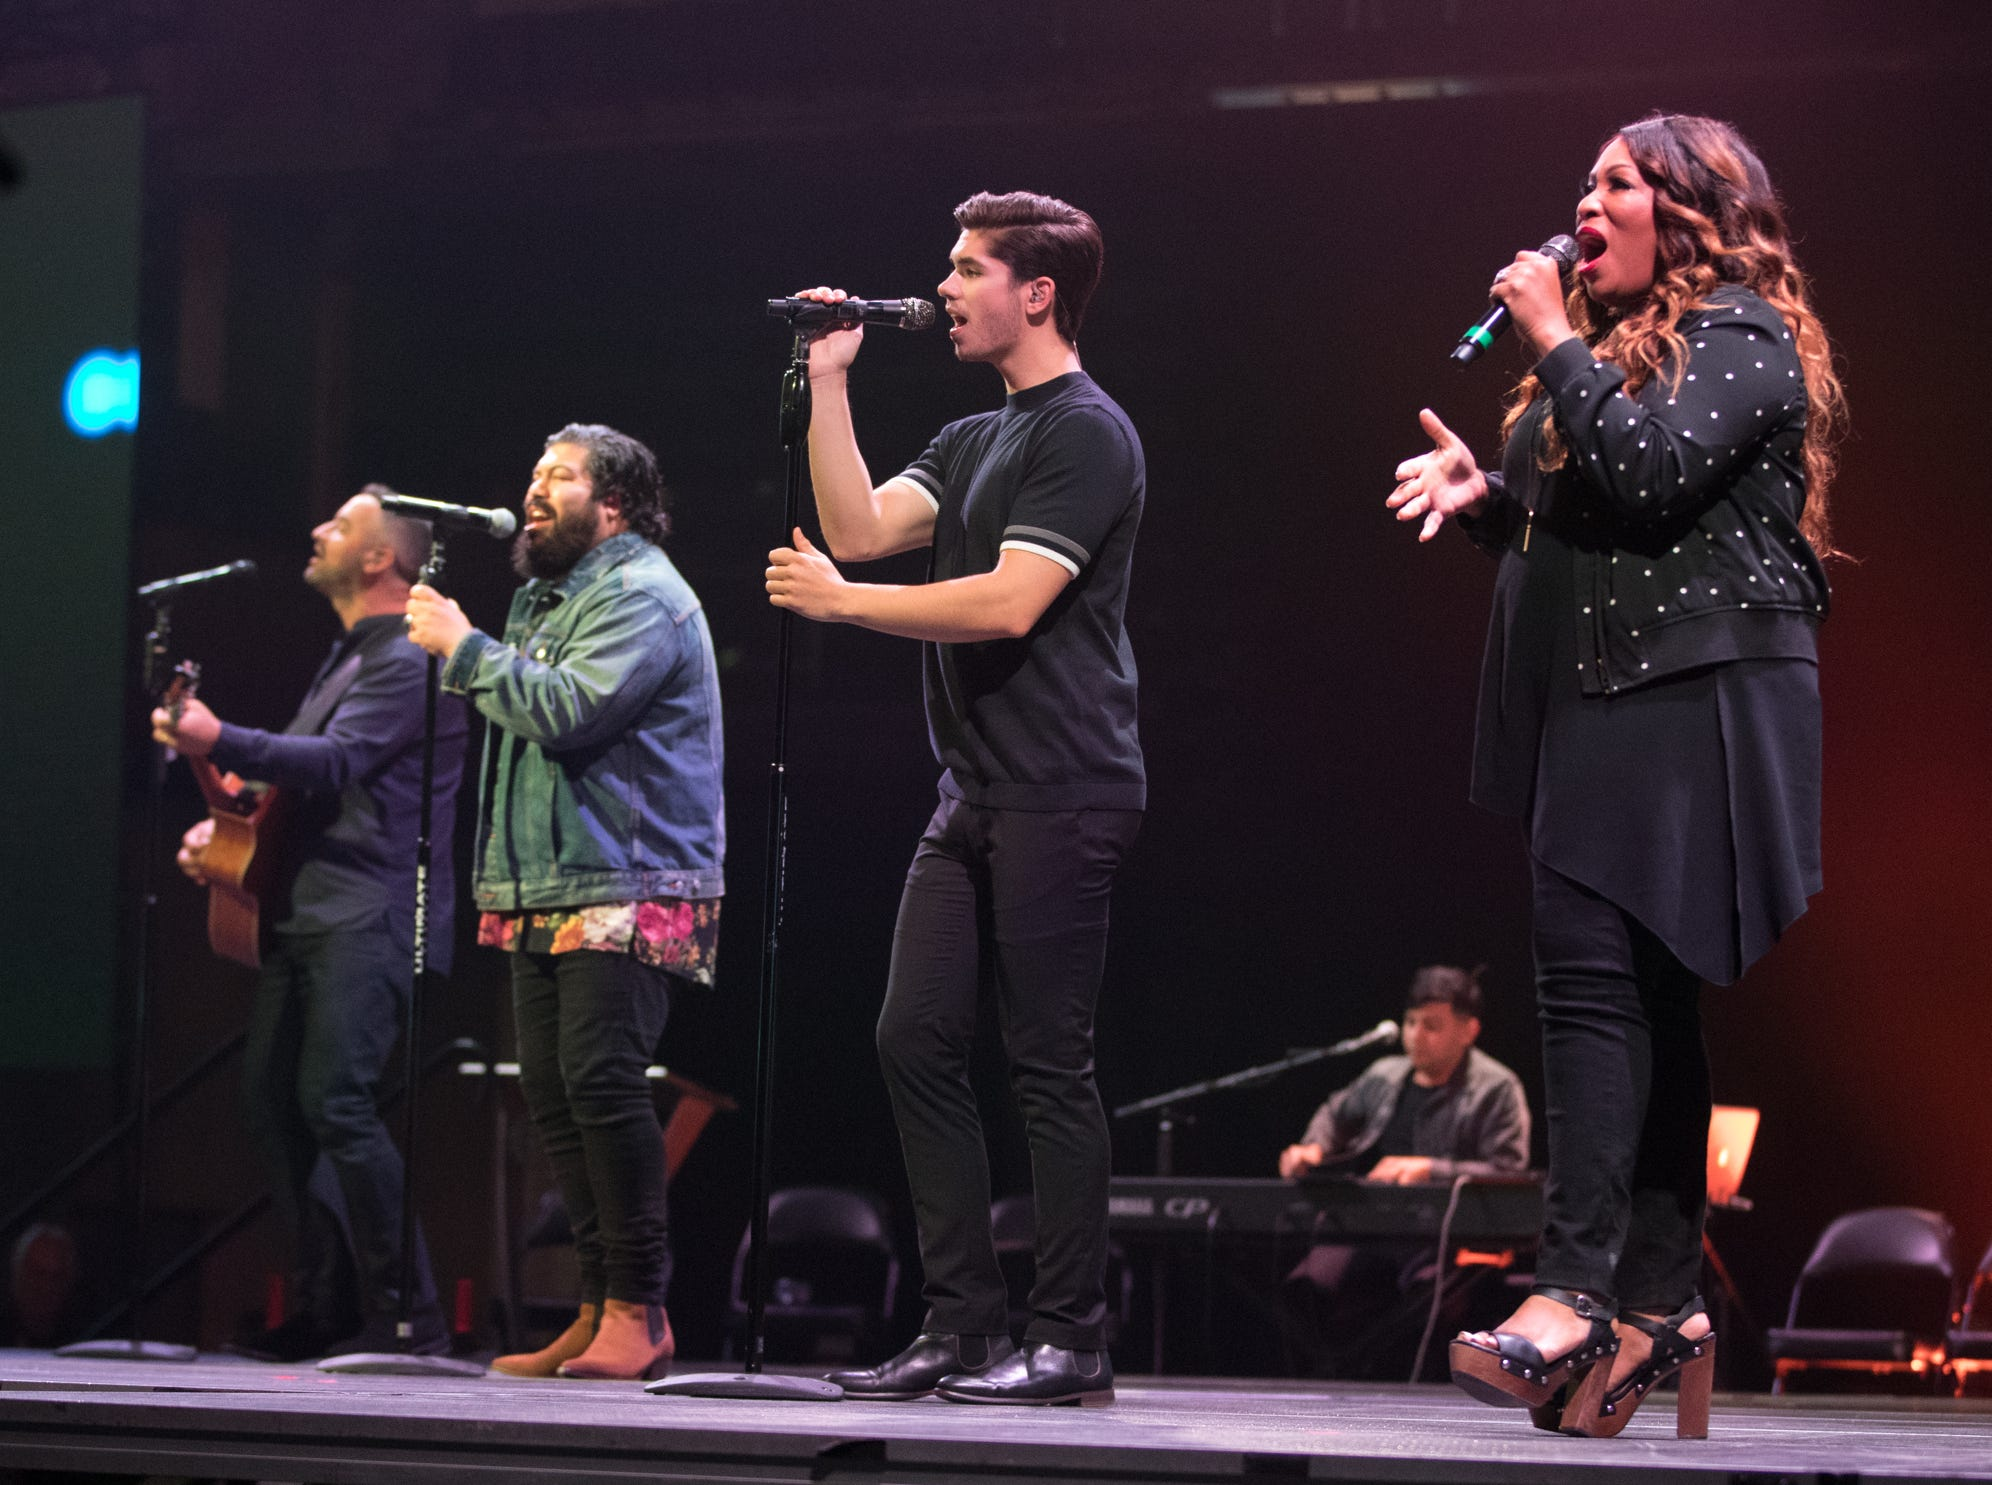 A warmup praise band entertains at Bankers Life Fieldhouse, Indianapolis, Friday, Aug. 10, 2018. The event, dubbed Night of Hope with Joel and Victoria, drew about 8,000 people to the arena for the event with the Houston-based televangelist.